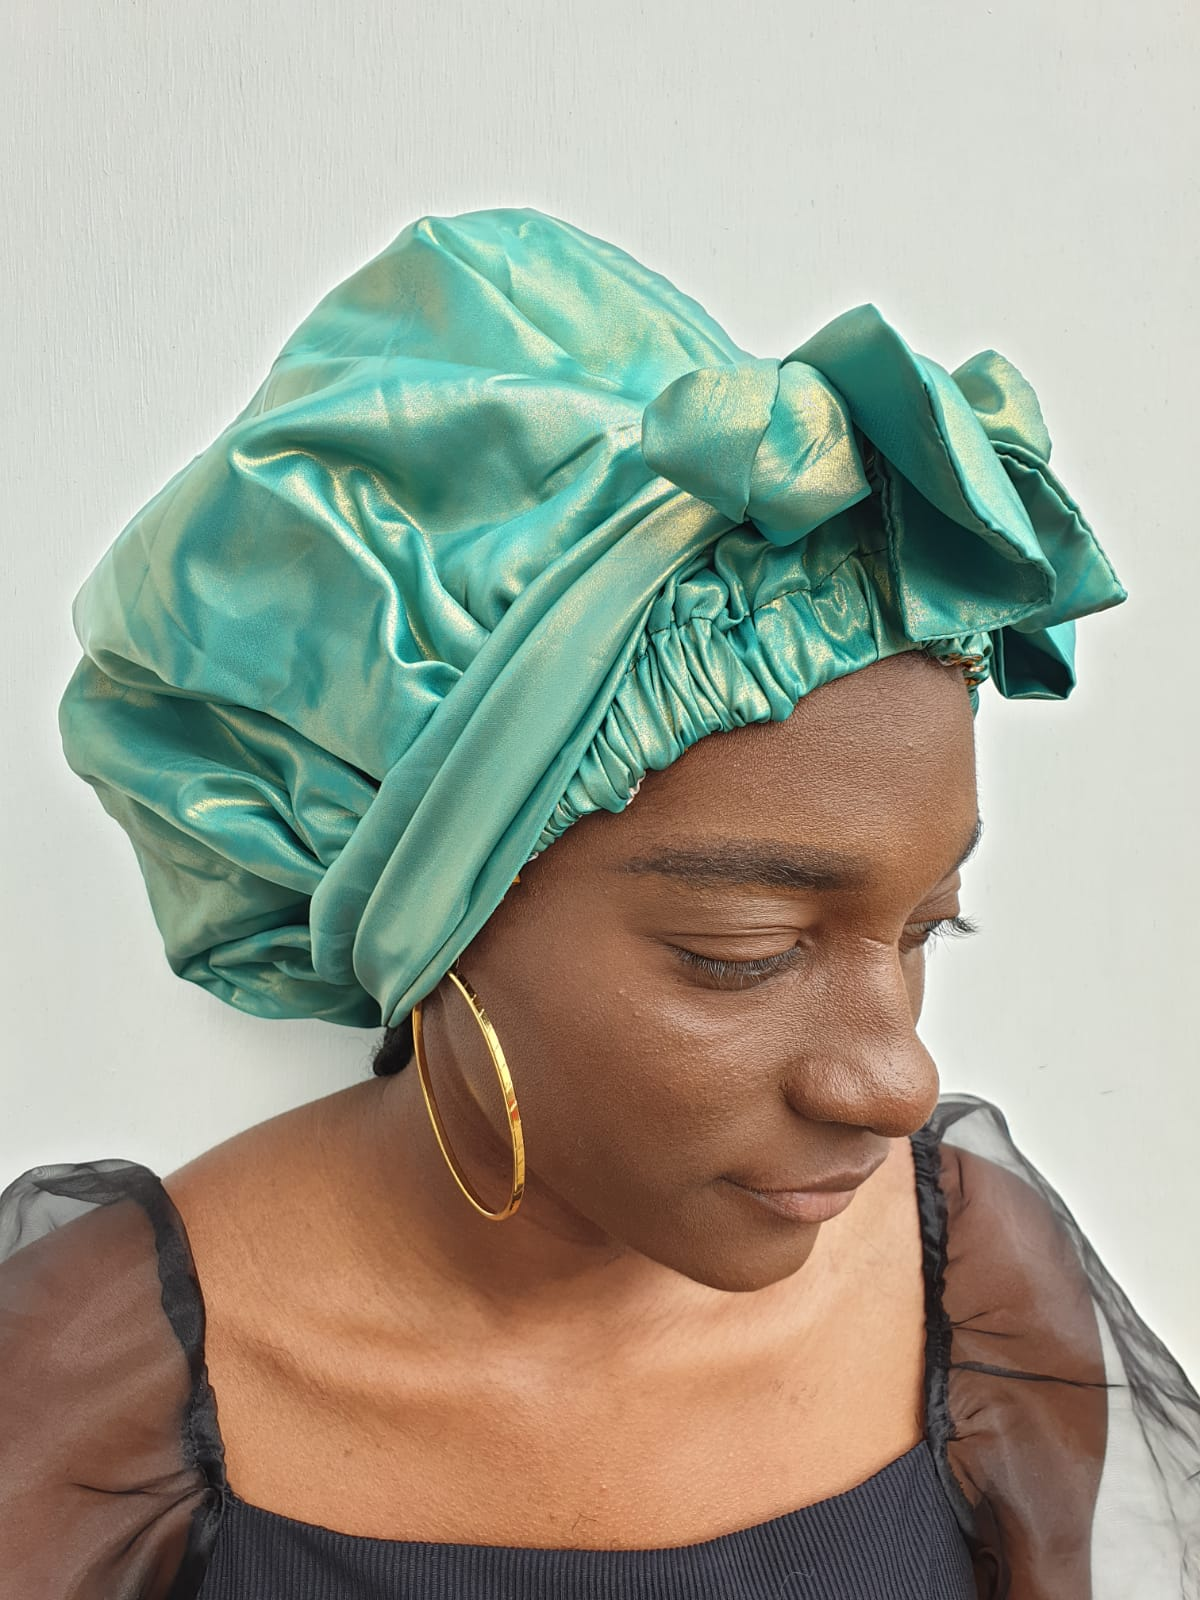 MPG Store Hand Made African Print Reversible Bonnets (Green Satin and African Print). UK Delivery Only. Fast Delivery 4 Days